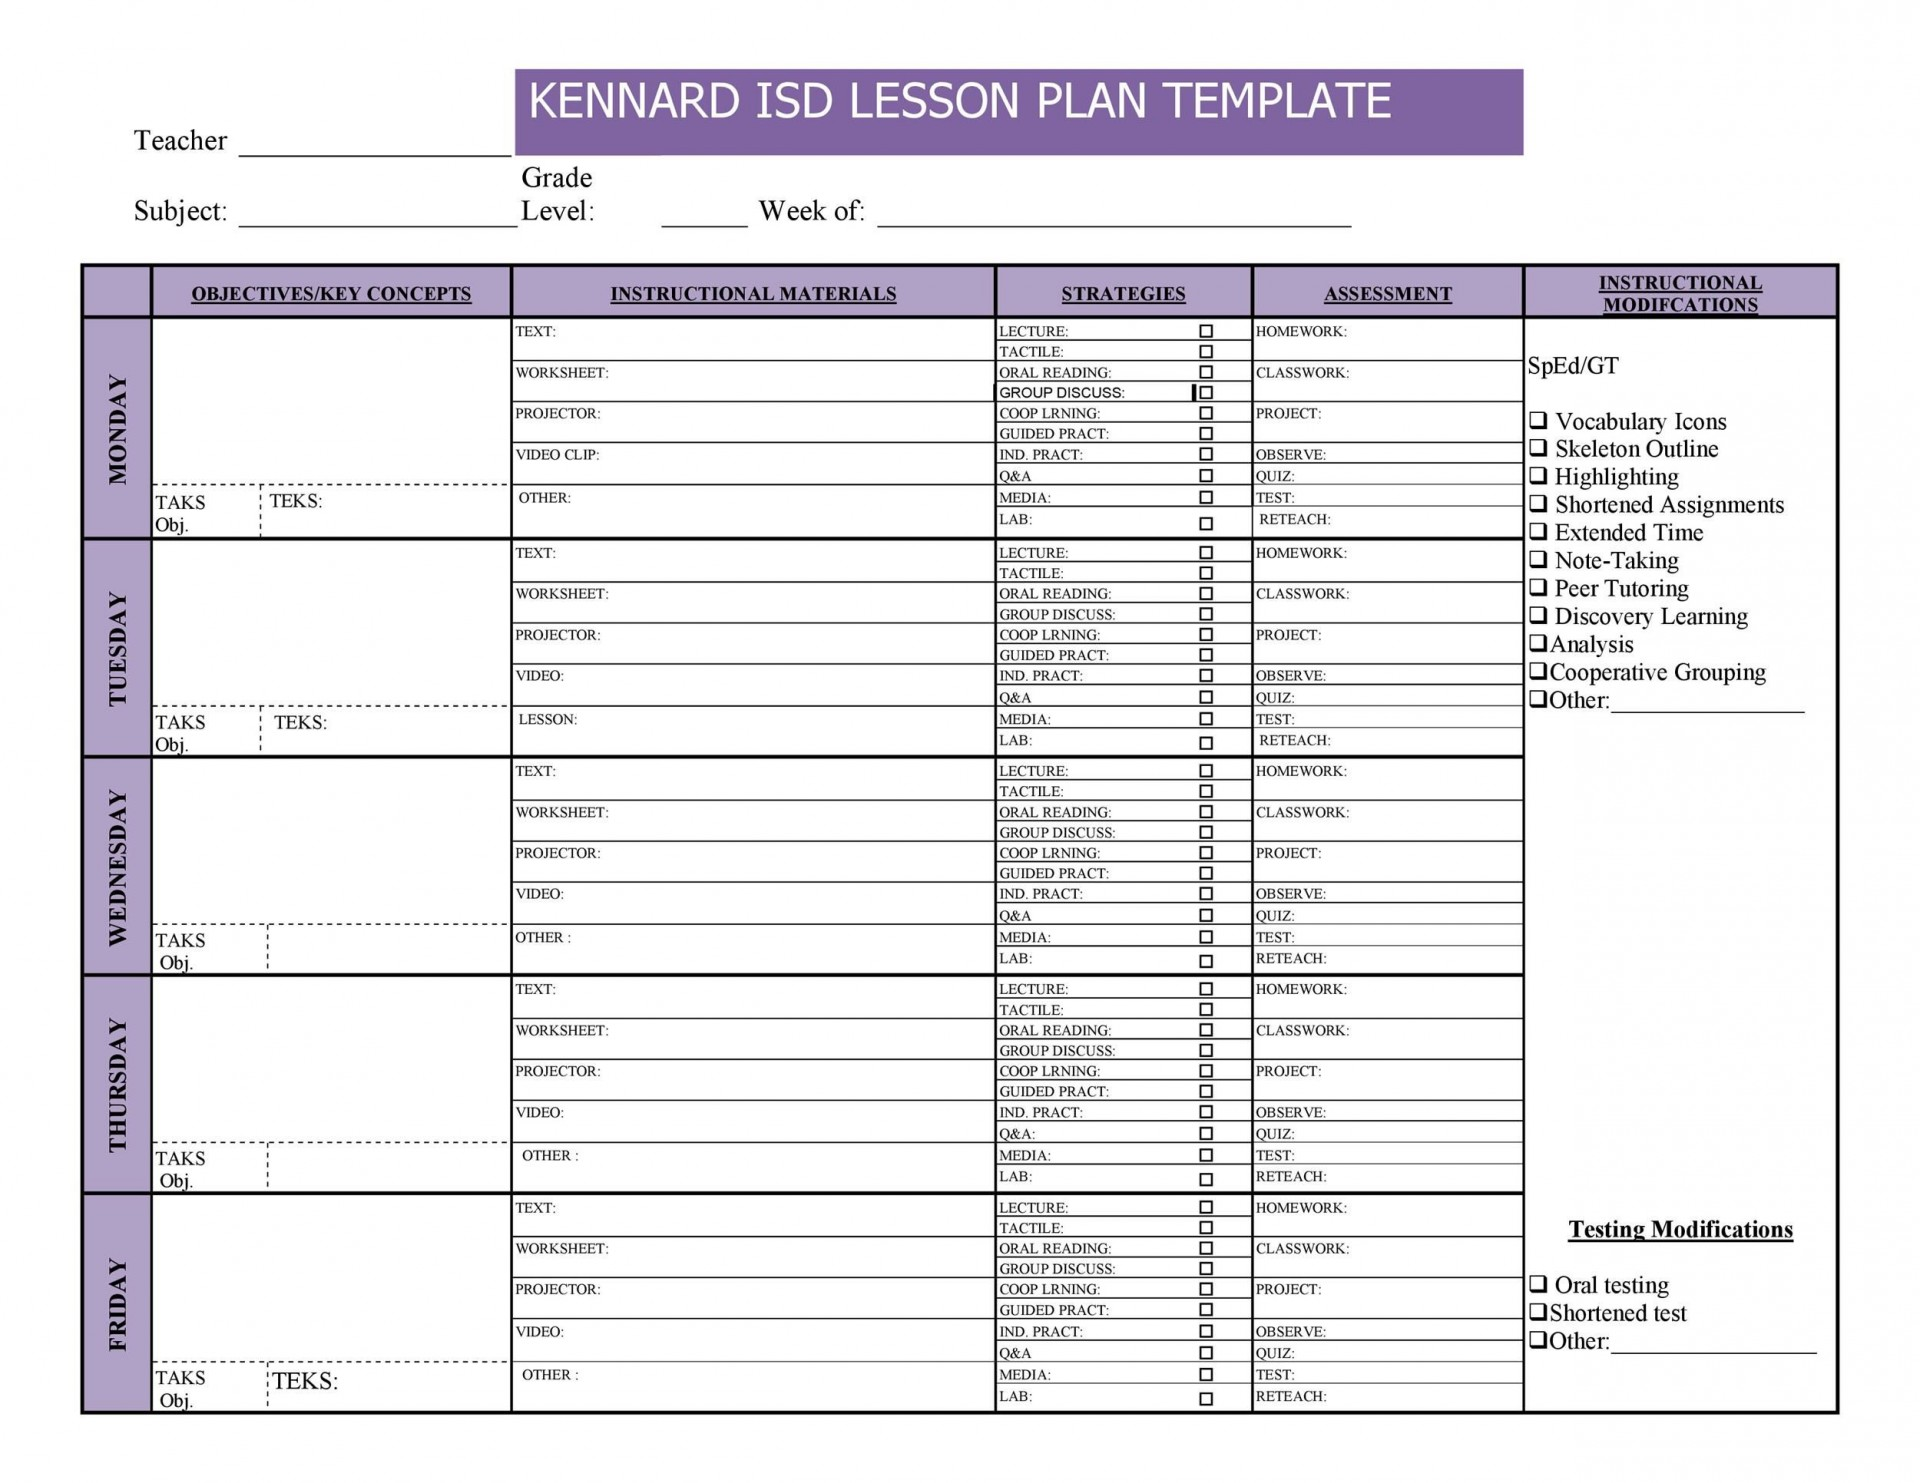 007 Phenomenal Preschool Lesson Plan Template Highest Quality  Editable With Objective Pre-k Printable1920